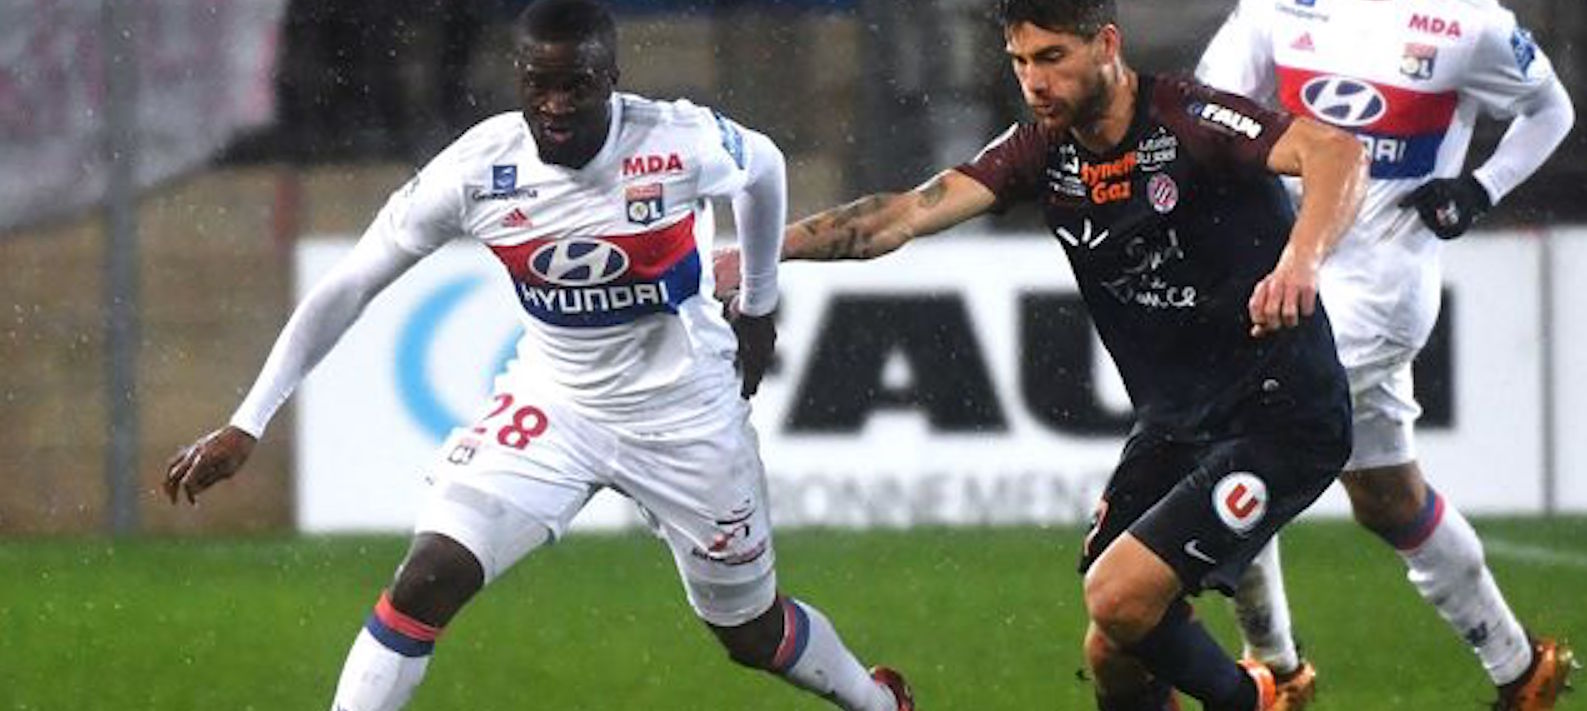 Tanguy Ndombele admits interest in Tottenham despite Manchester United links